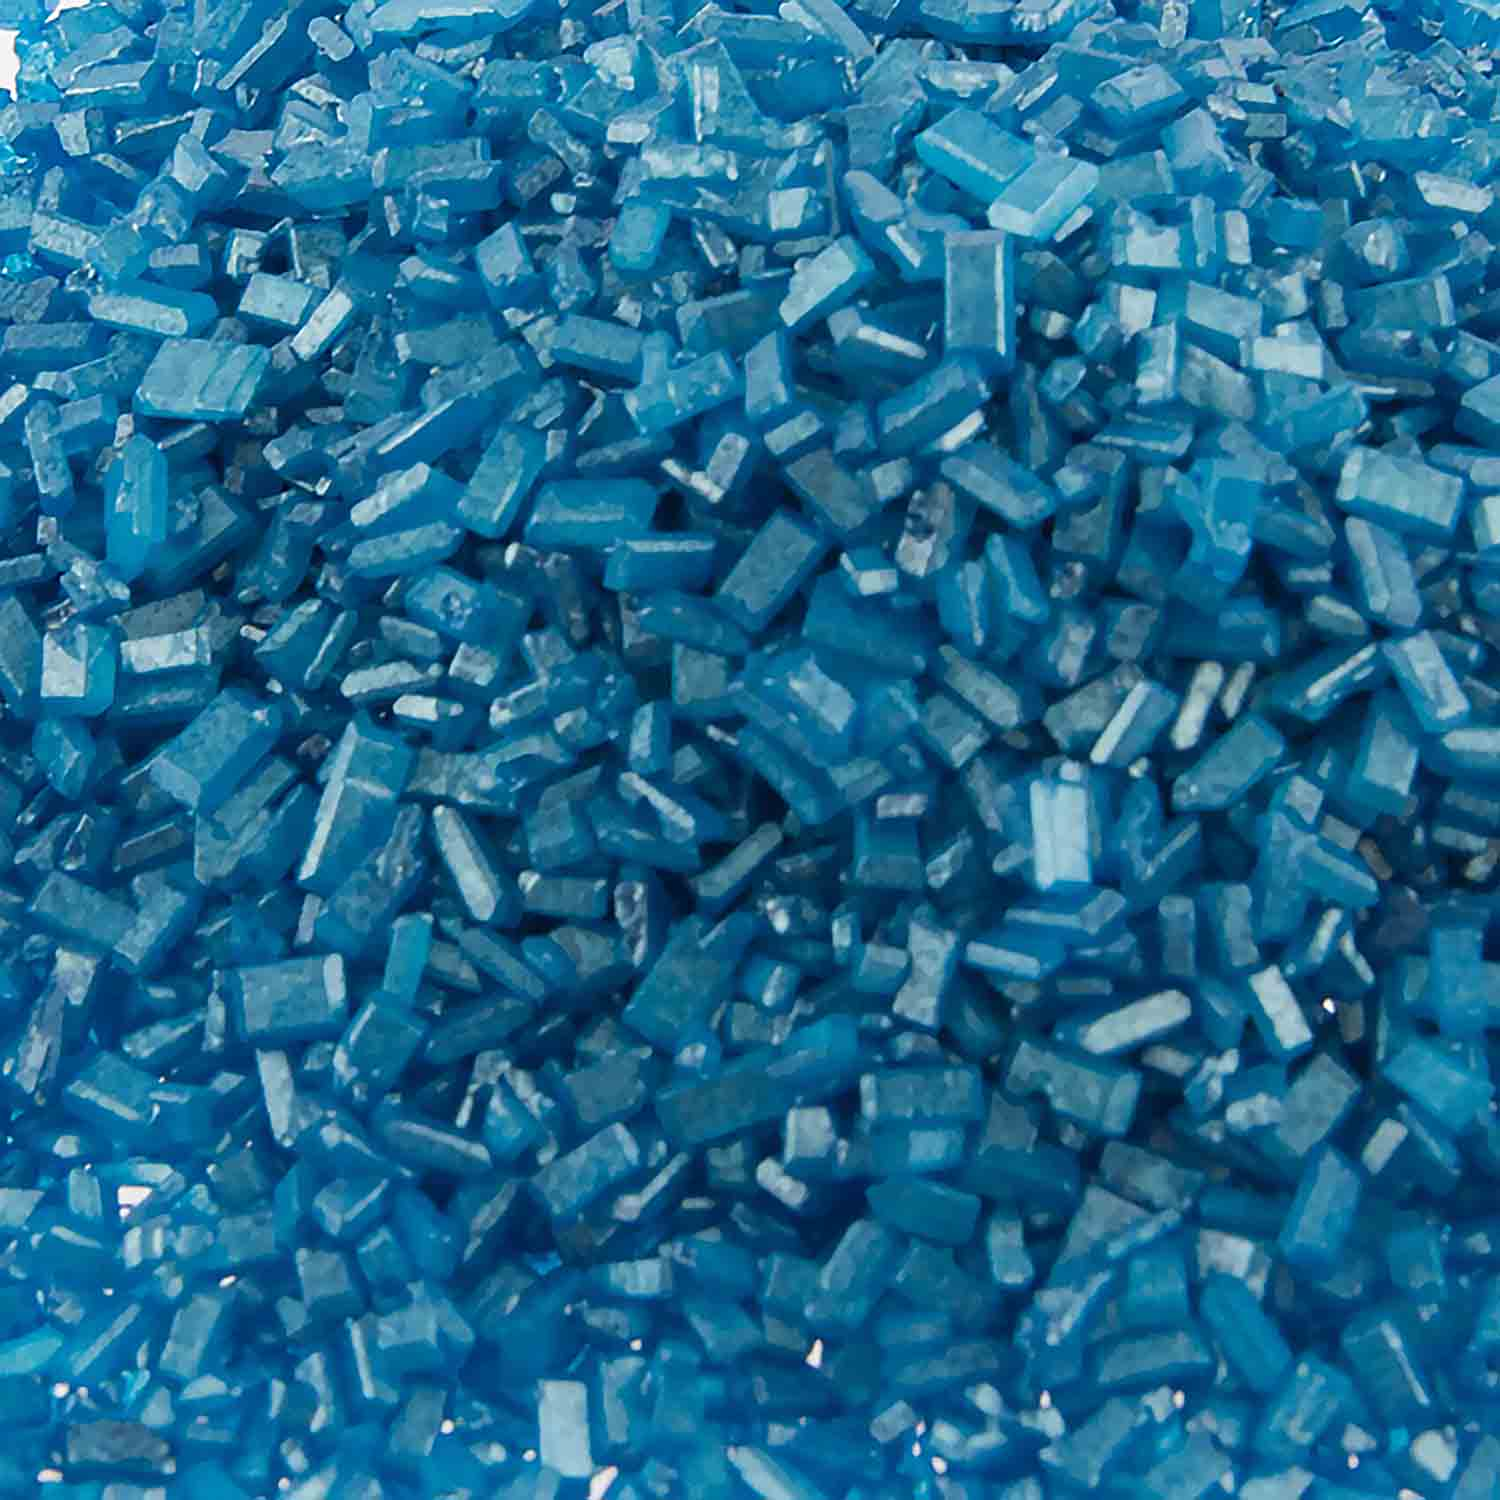 Blue Pearlized Coarse Sugar / Sugar Crystals